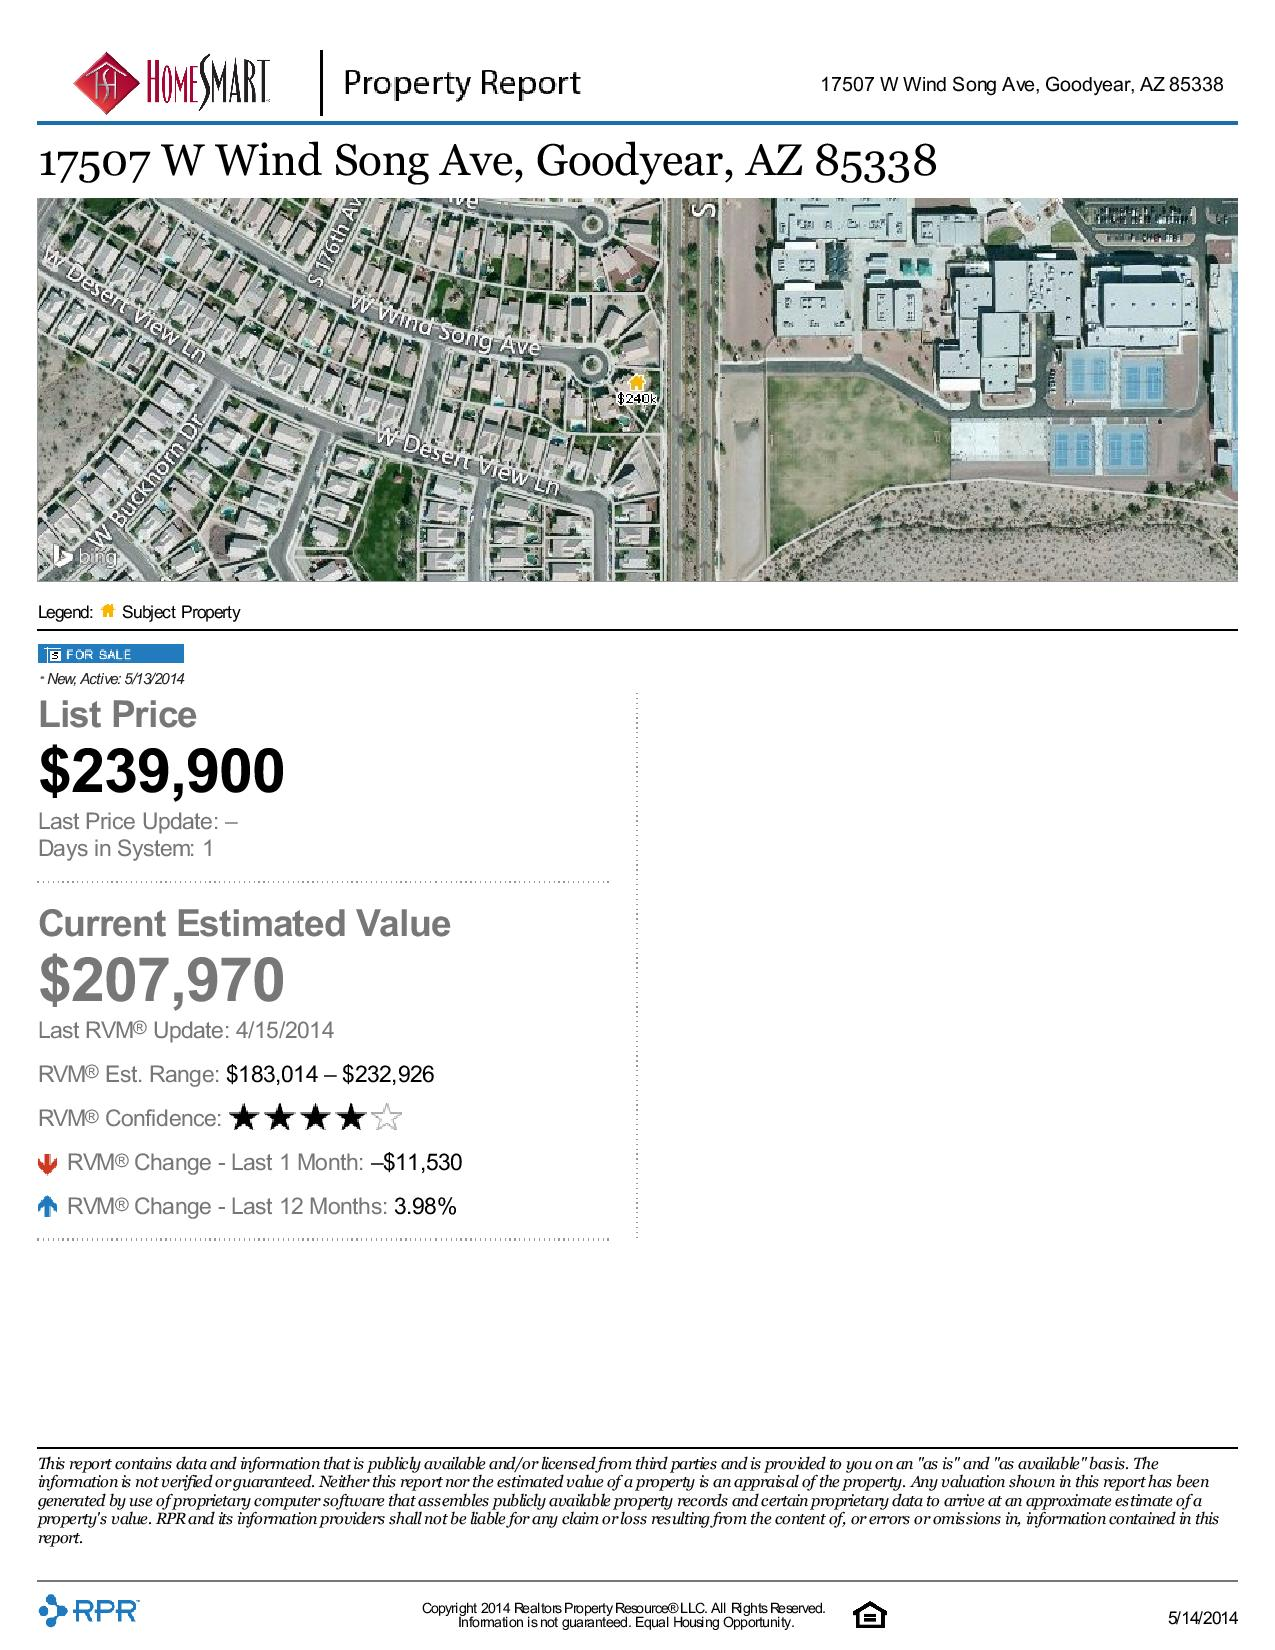 17507-W-Wind-Song-Ave-Goodyear-AZ-85338-page-002